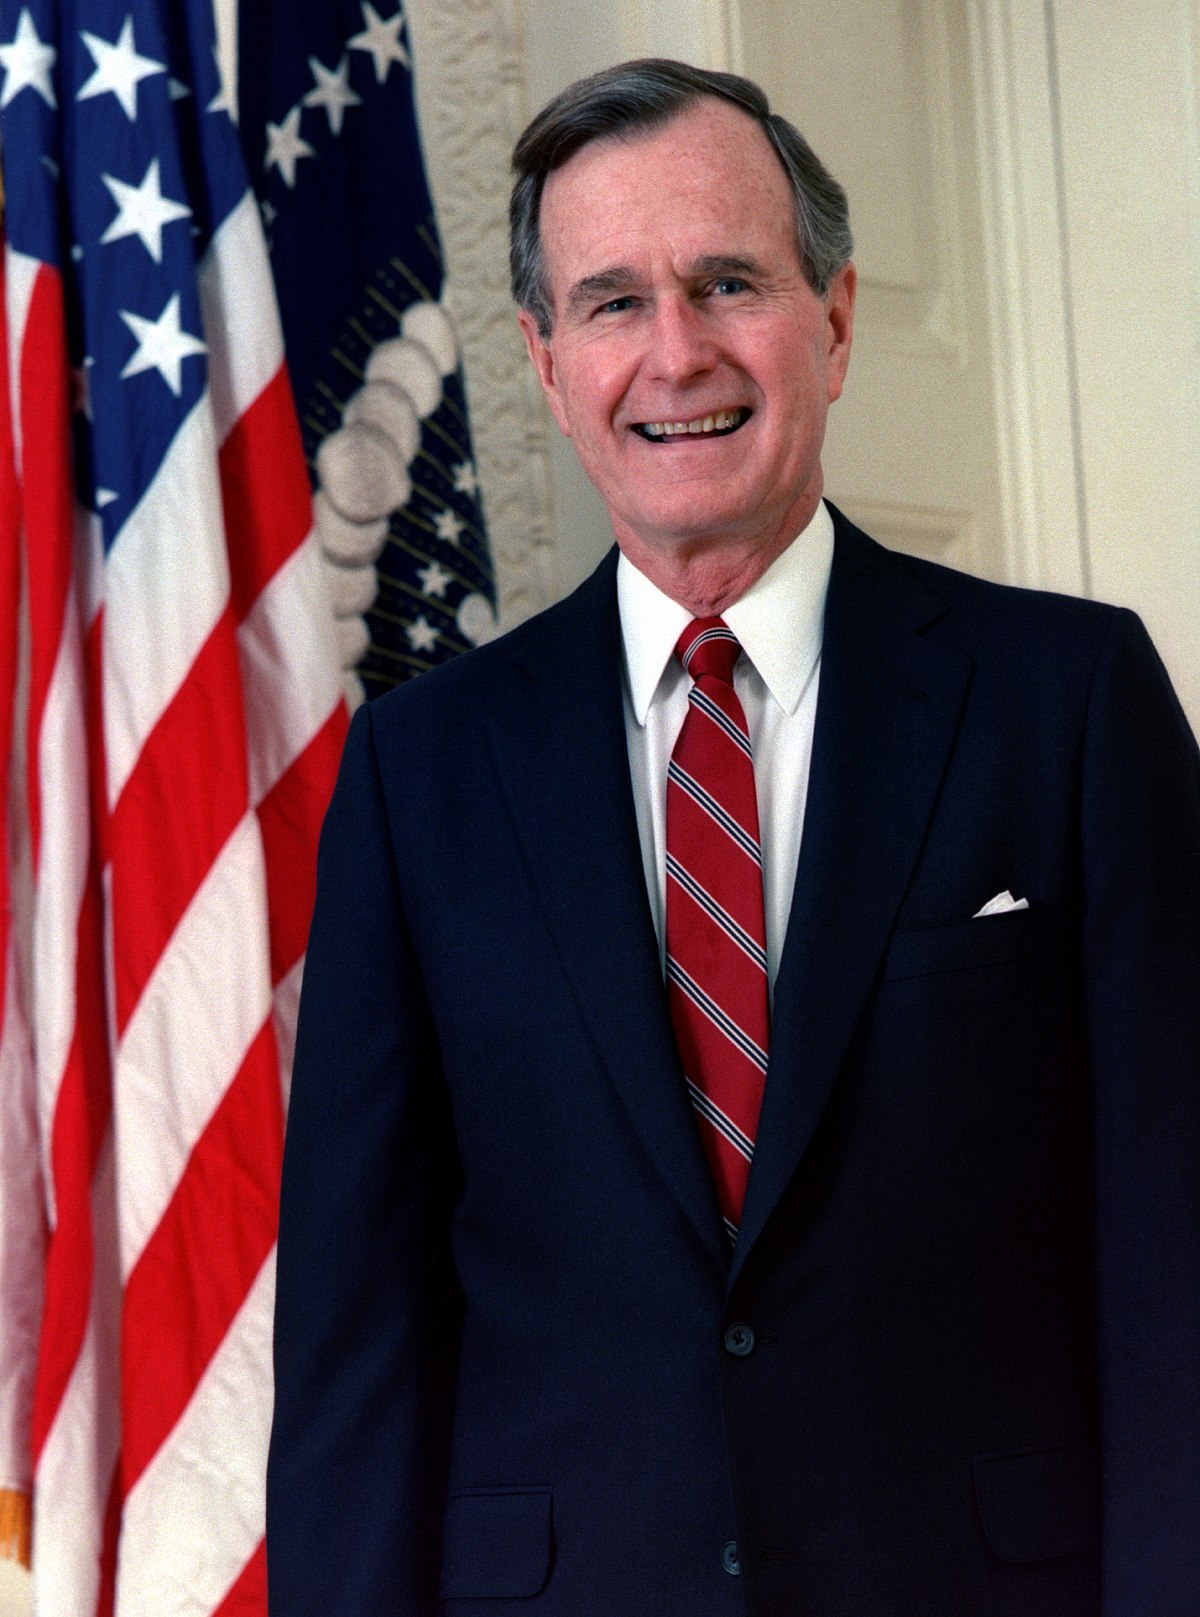 a description of postmodern presidency of george herbert walker bush George h w bush successes and failures george h w bush net ori george herbert walker bush is an american politician who george h w bush presidency.